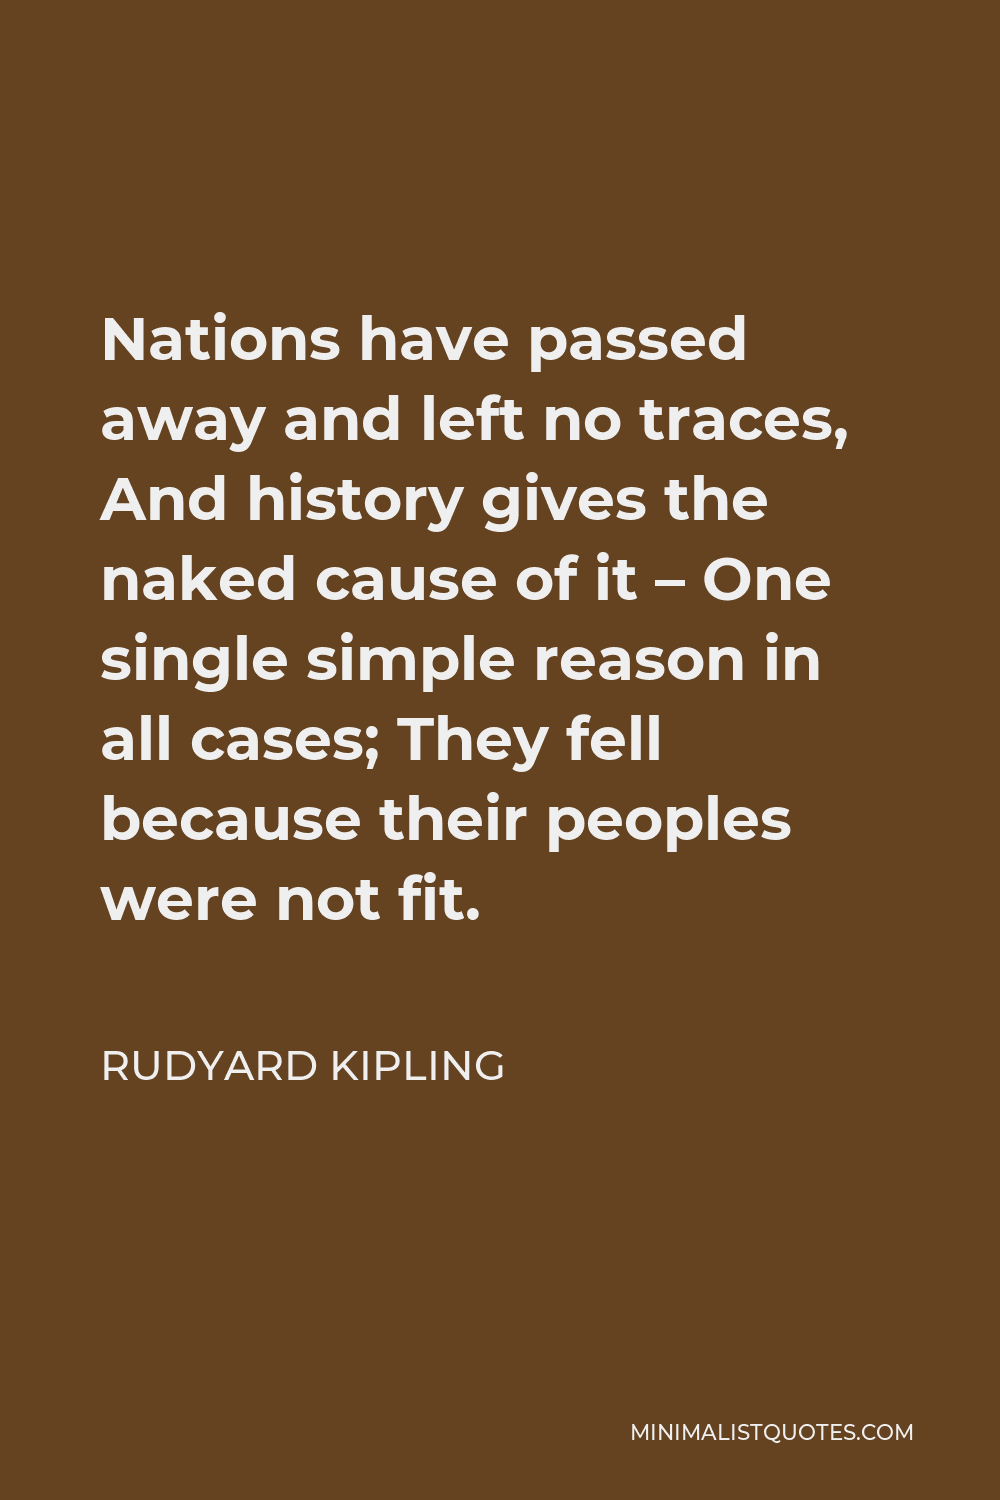 Rudyard Kipling Quote - Nations have passed away and left no traces, And history gives the naked cause of it – One single simple reason in all cases; They fell because their peoples were not fit.